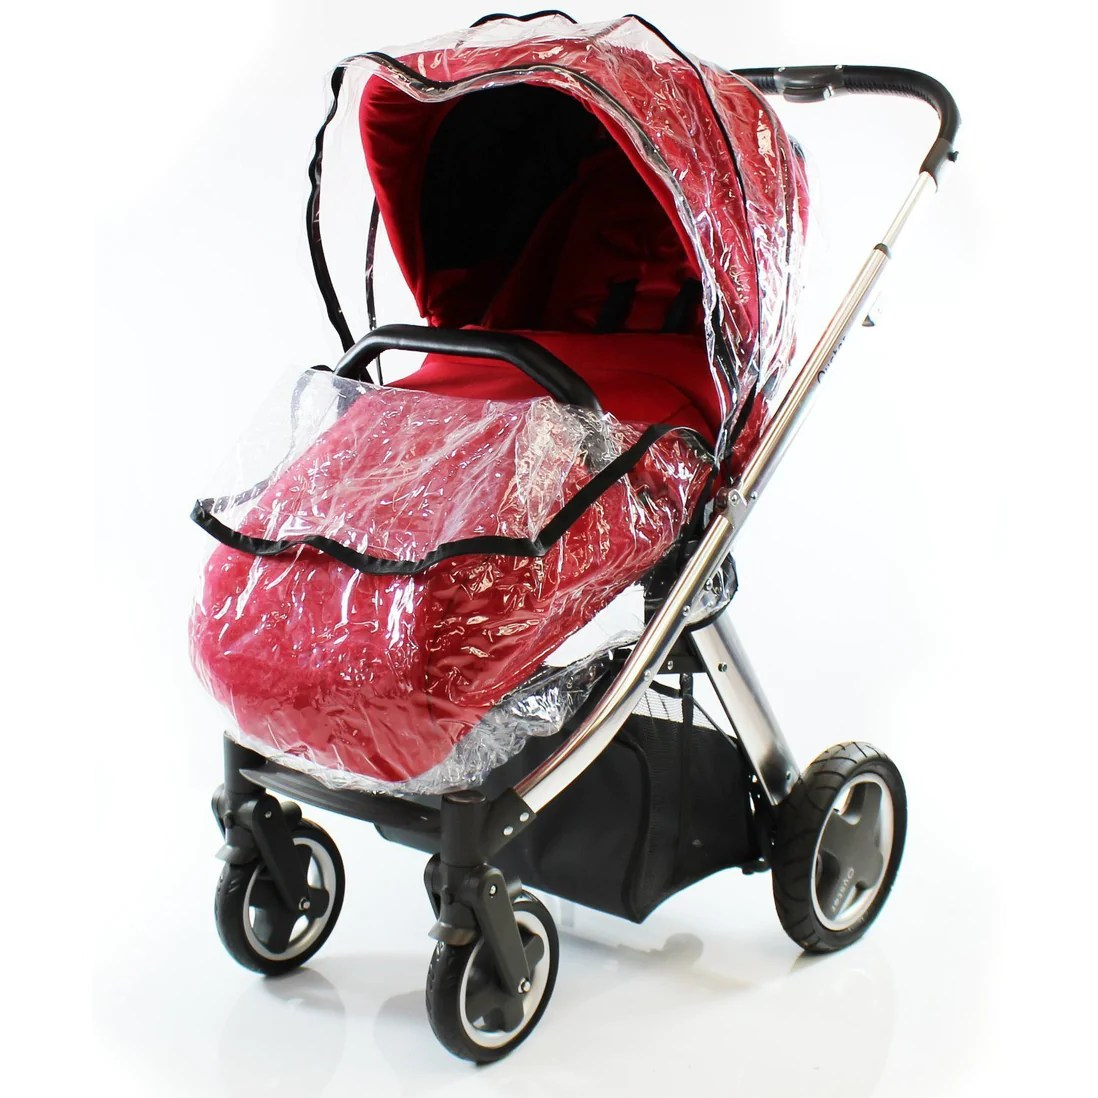 Joolz Pram Mothercare Sale Now On Save Up To 50 Luxury Baby Prducts By Isafe